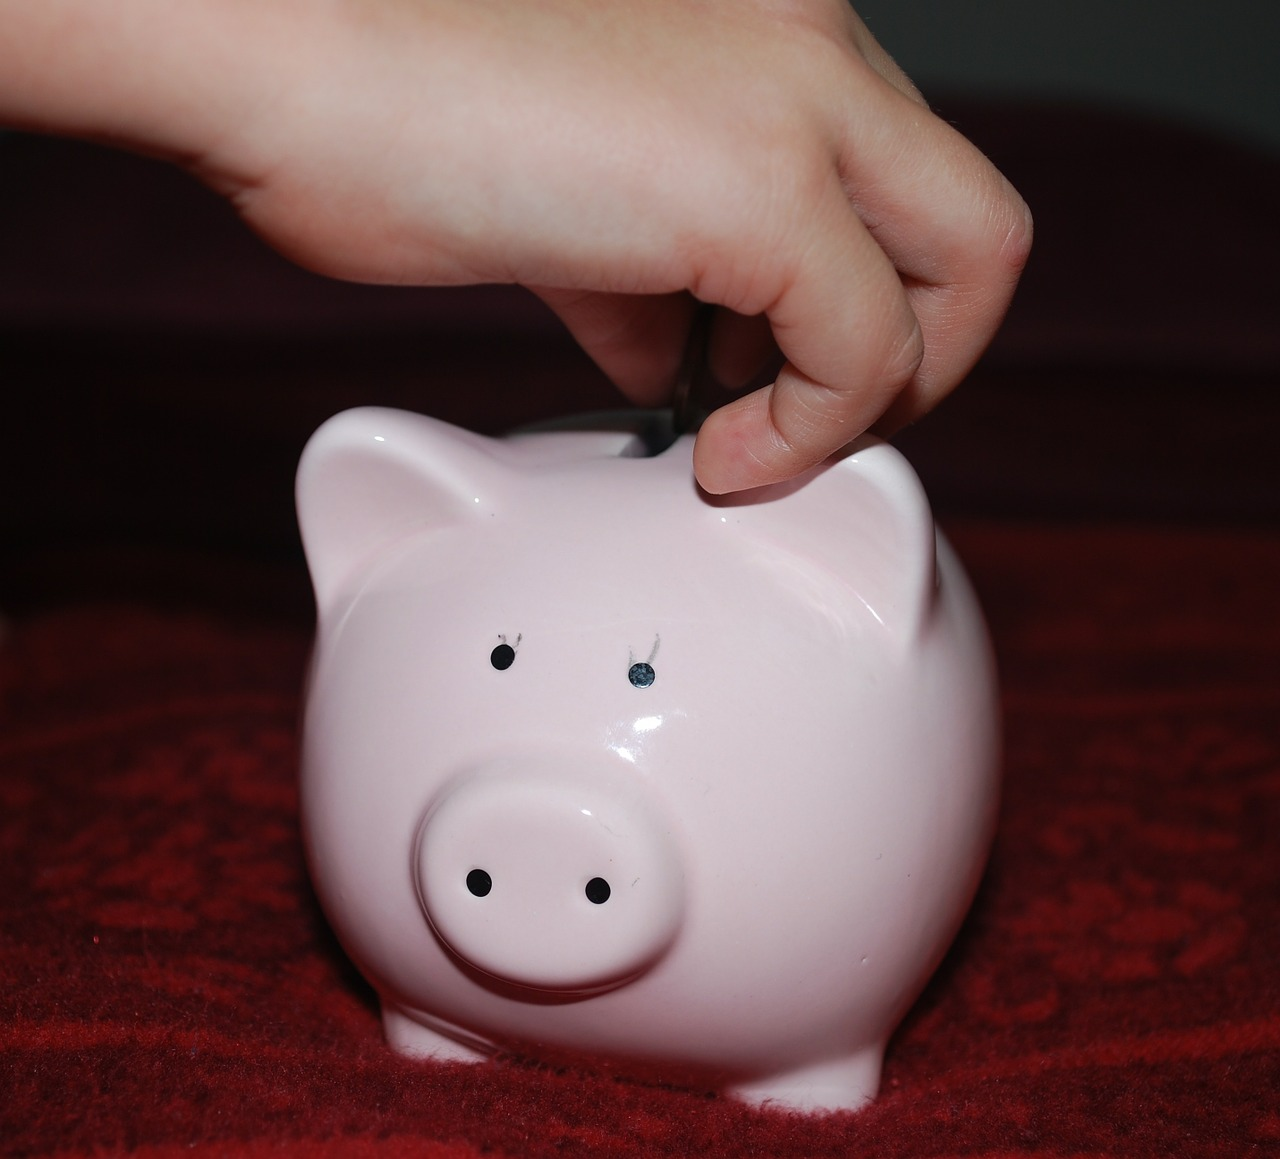 Save allowance in a piggy bank.